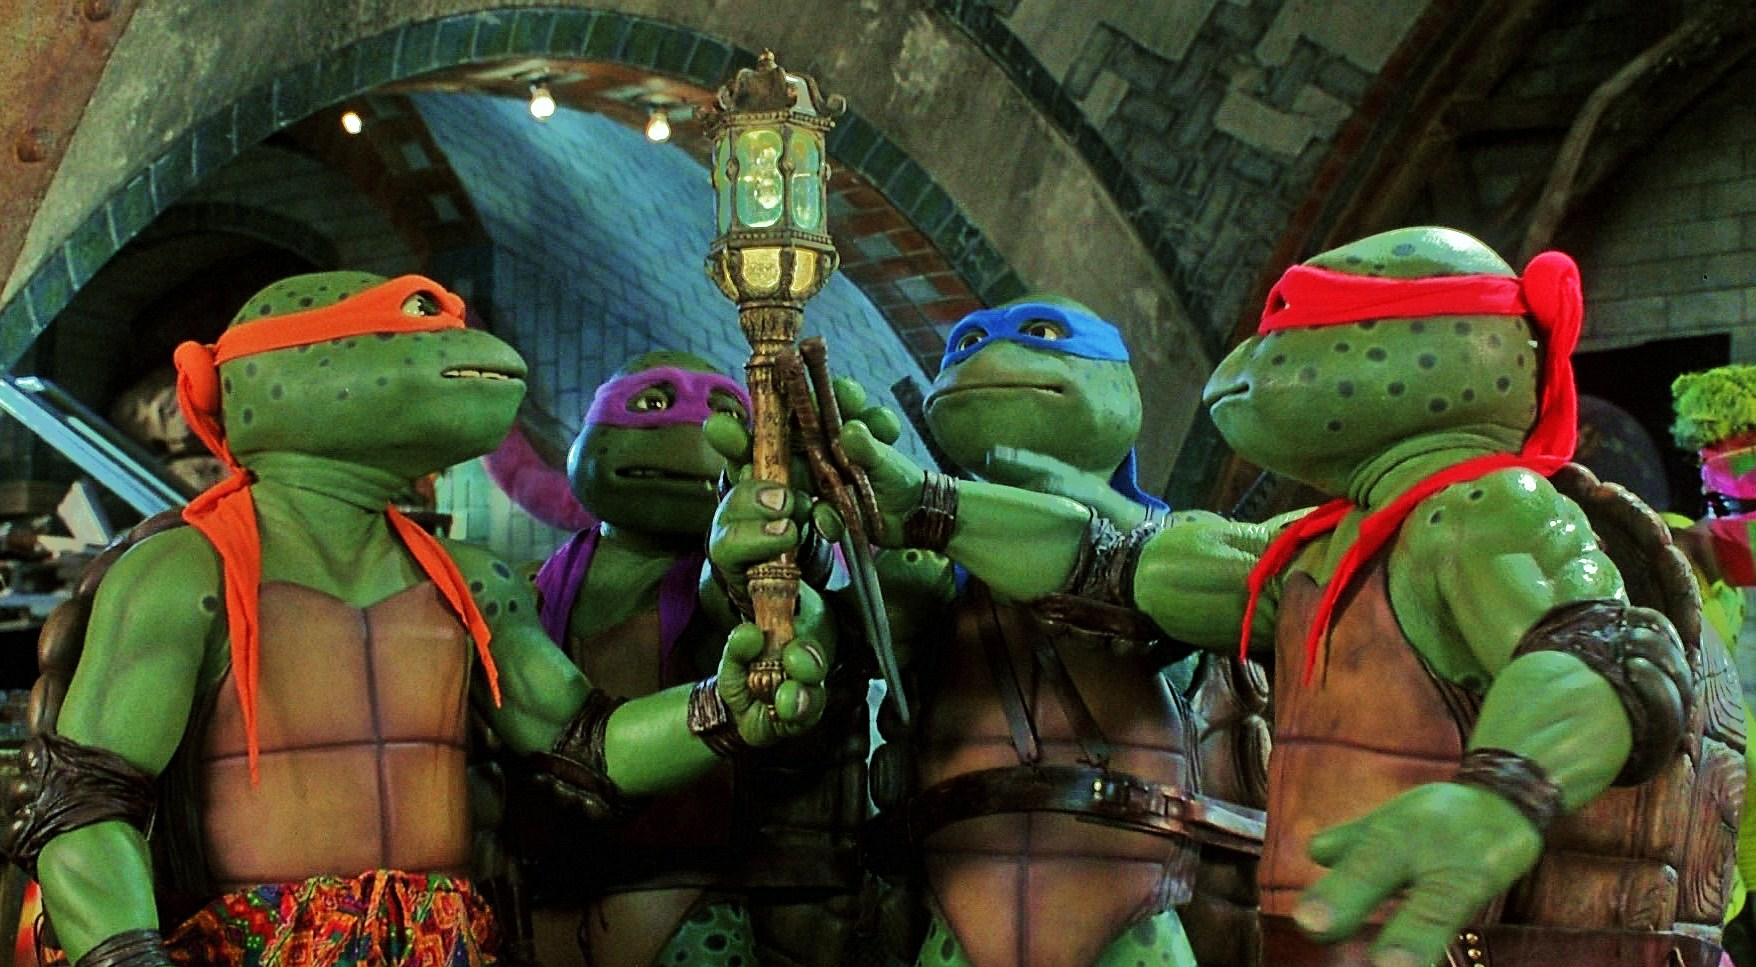 Naked teenage mutant ninja turtles